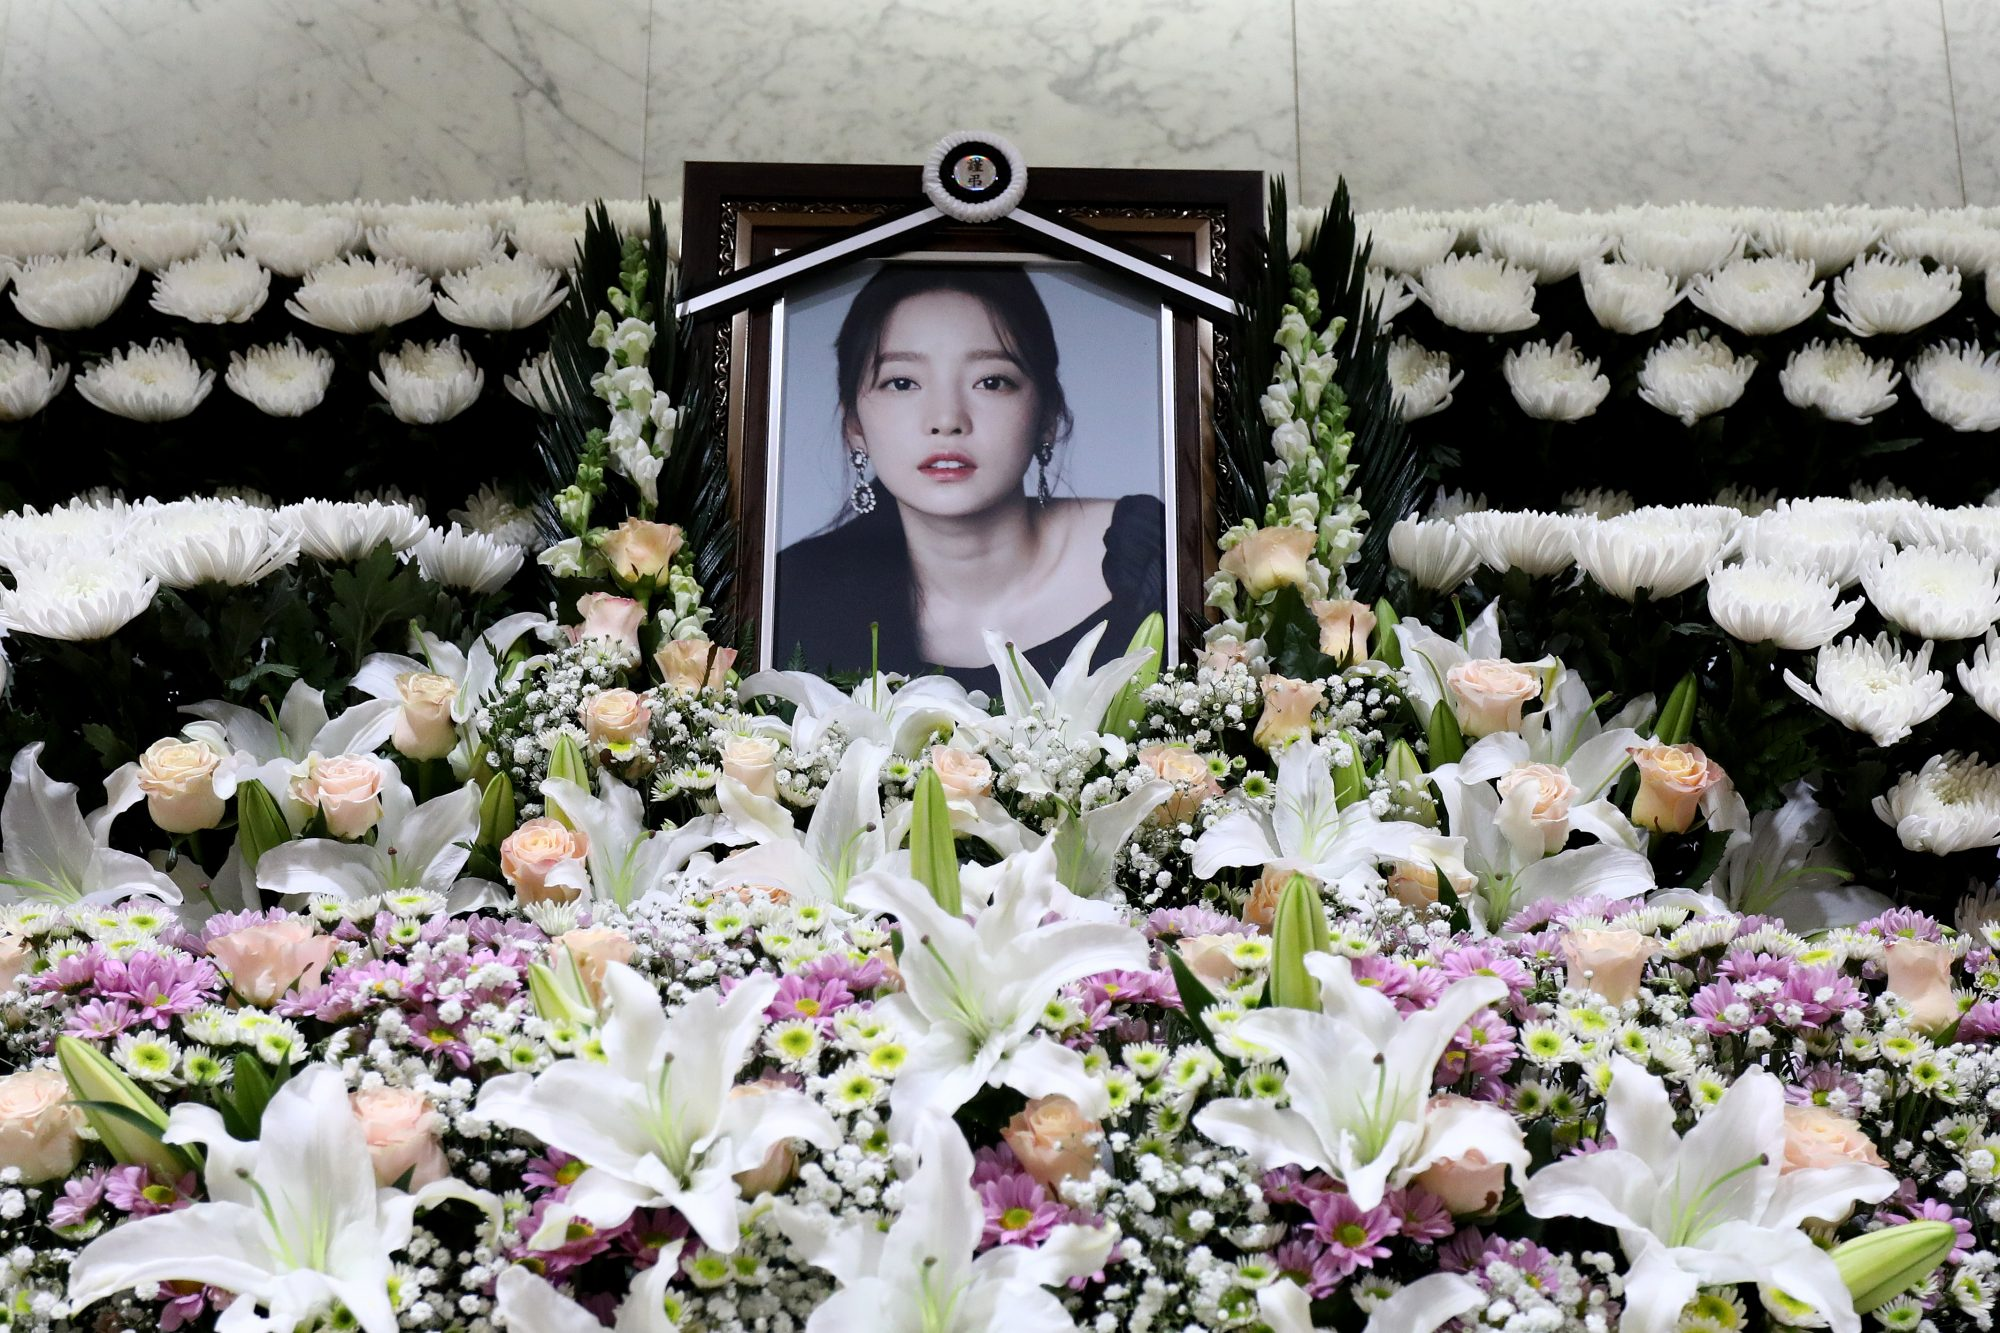 People React To Death Of K-pop Star Goo Hara of Kara In Seoul